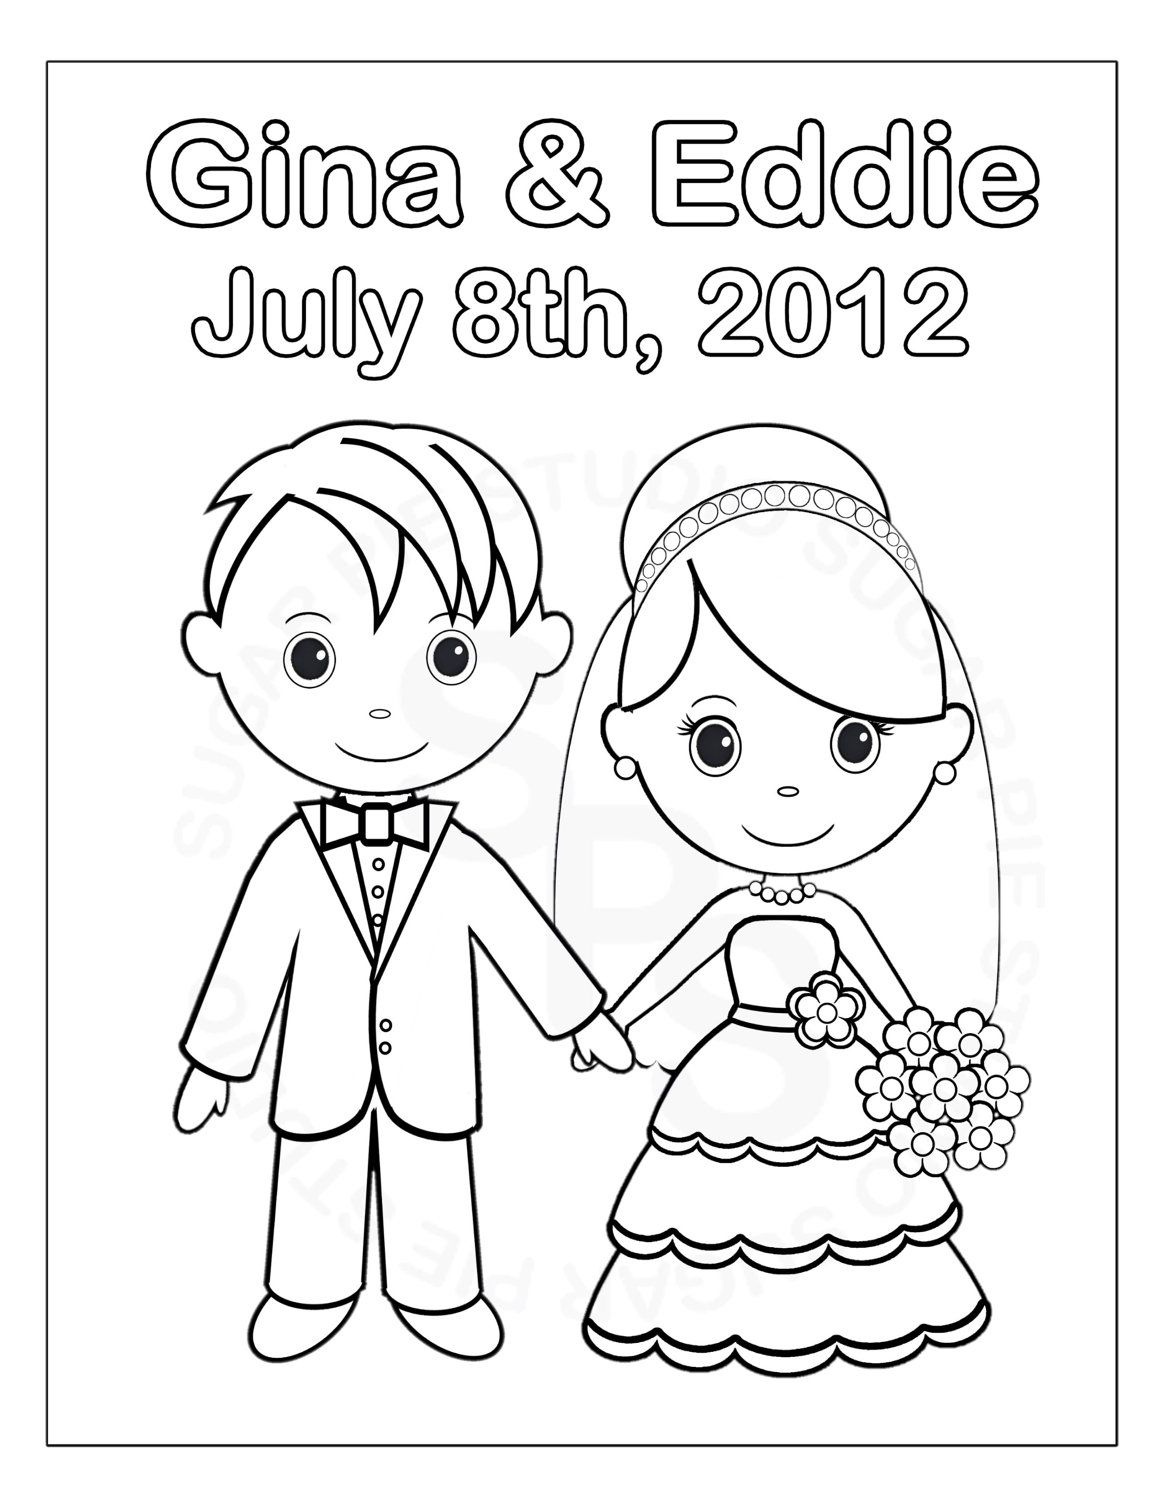 bride and groom coloring pages bride and groom coloring pages bride pages groom and coloring